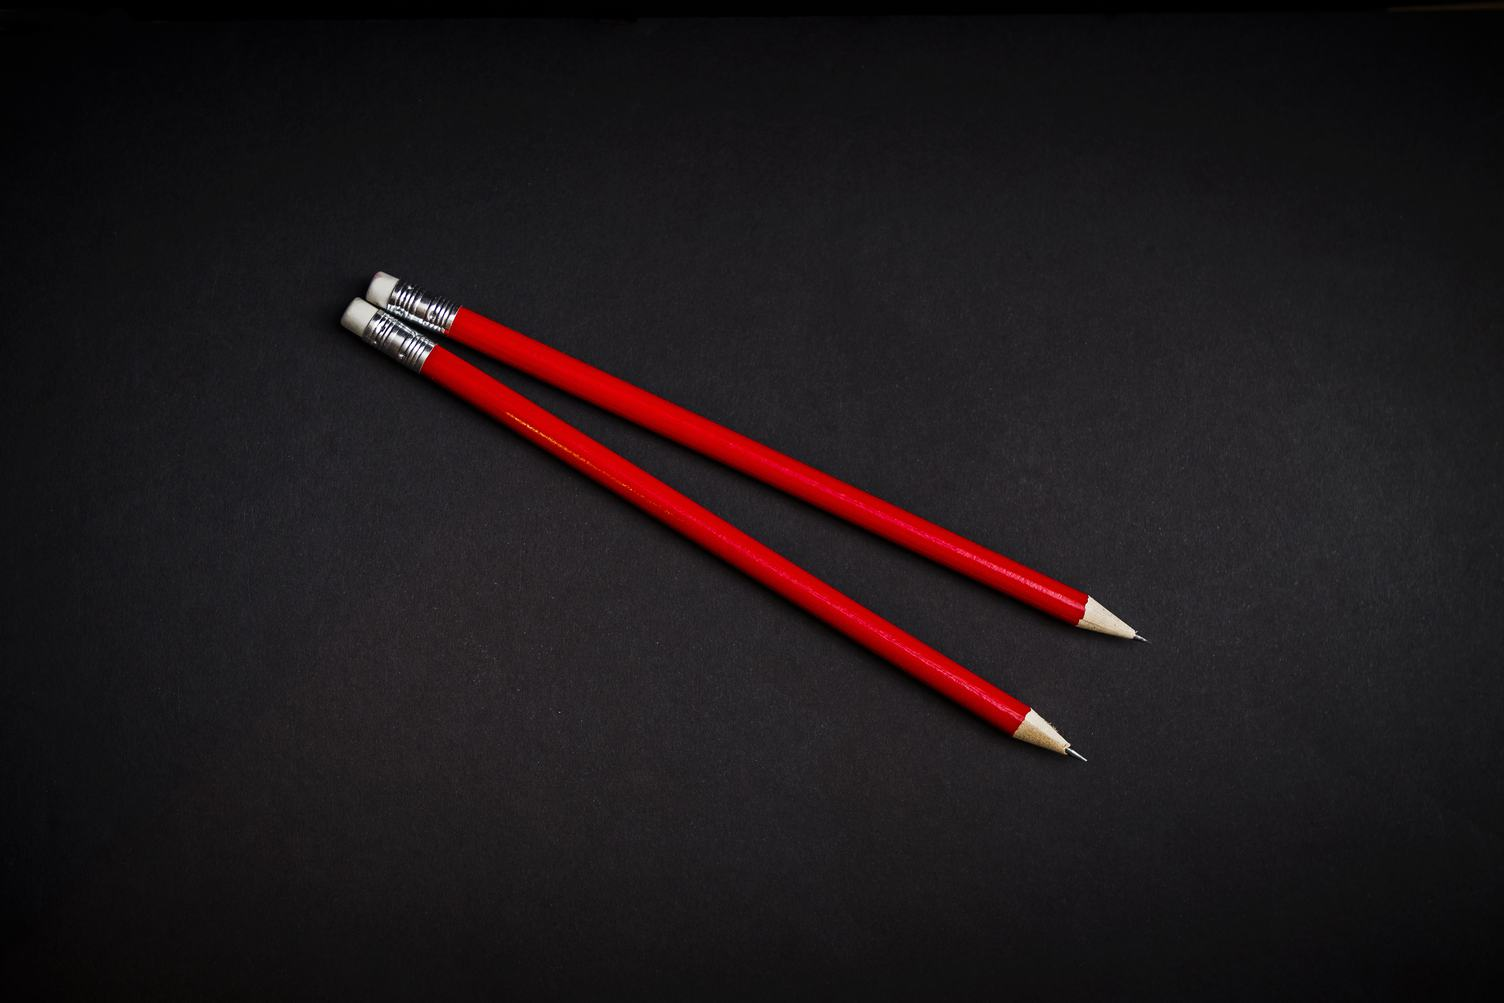 Two Red Pencils on Black Background